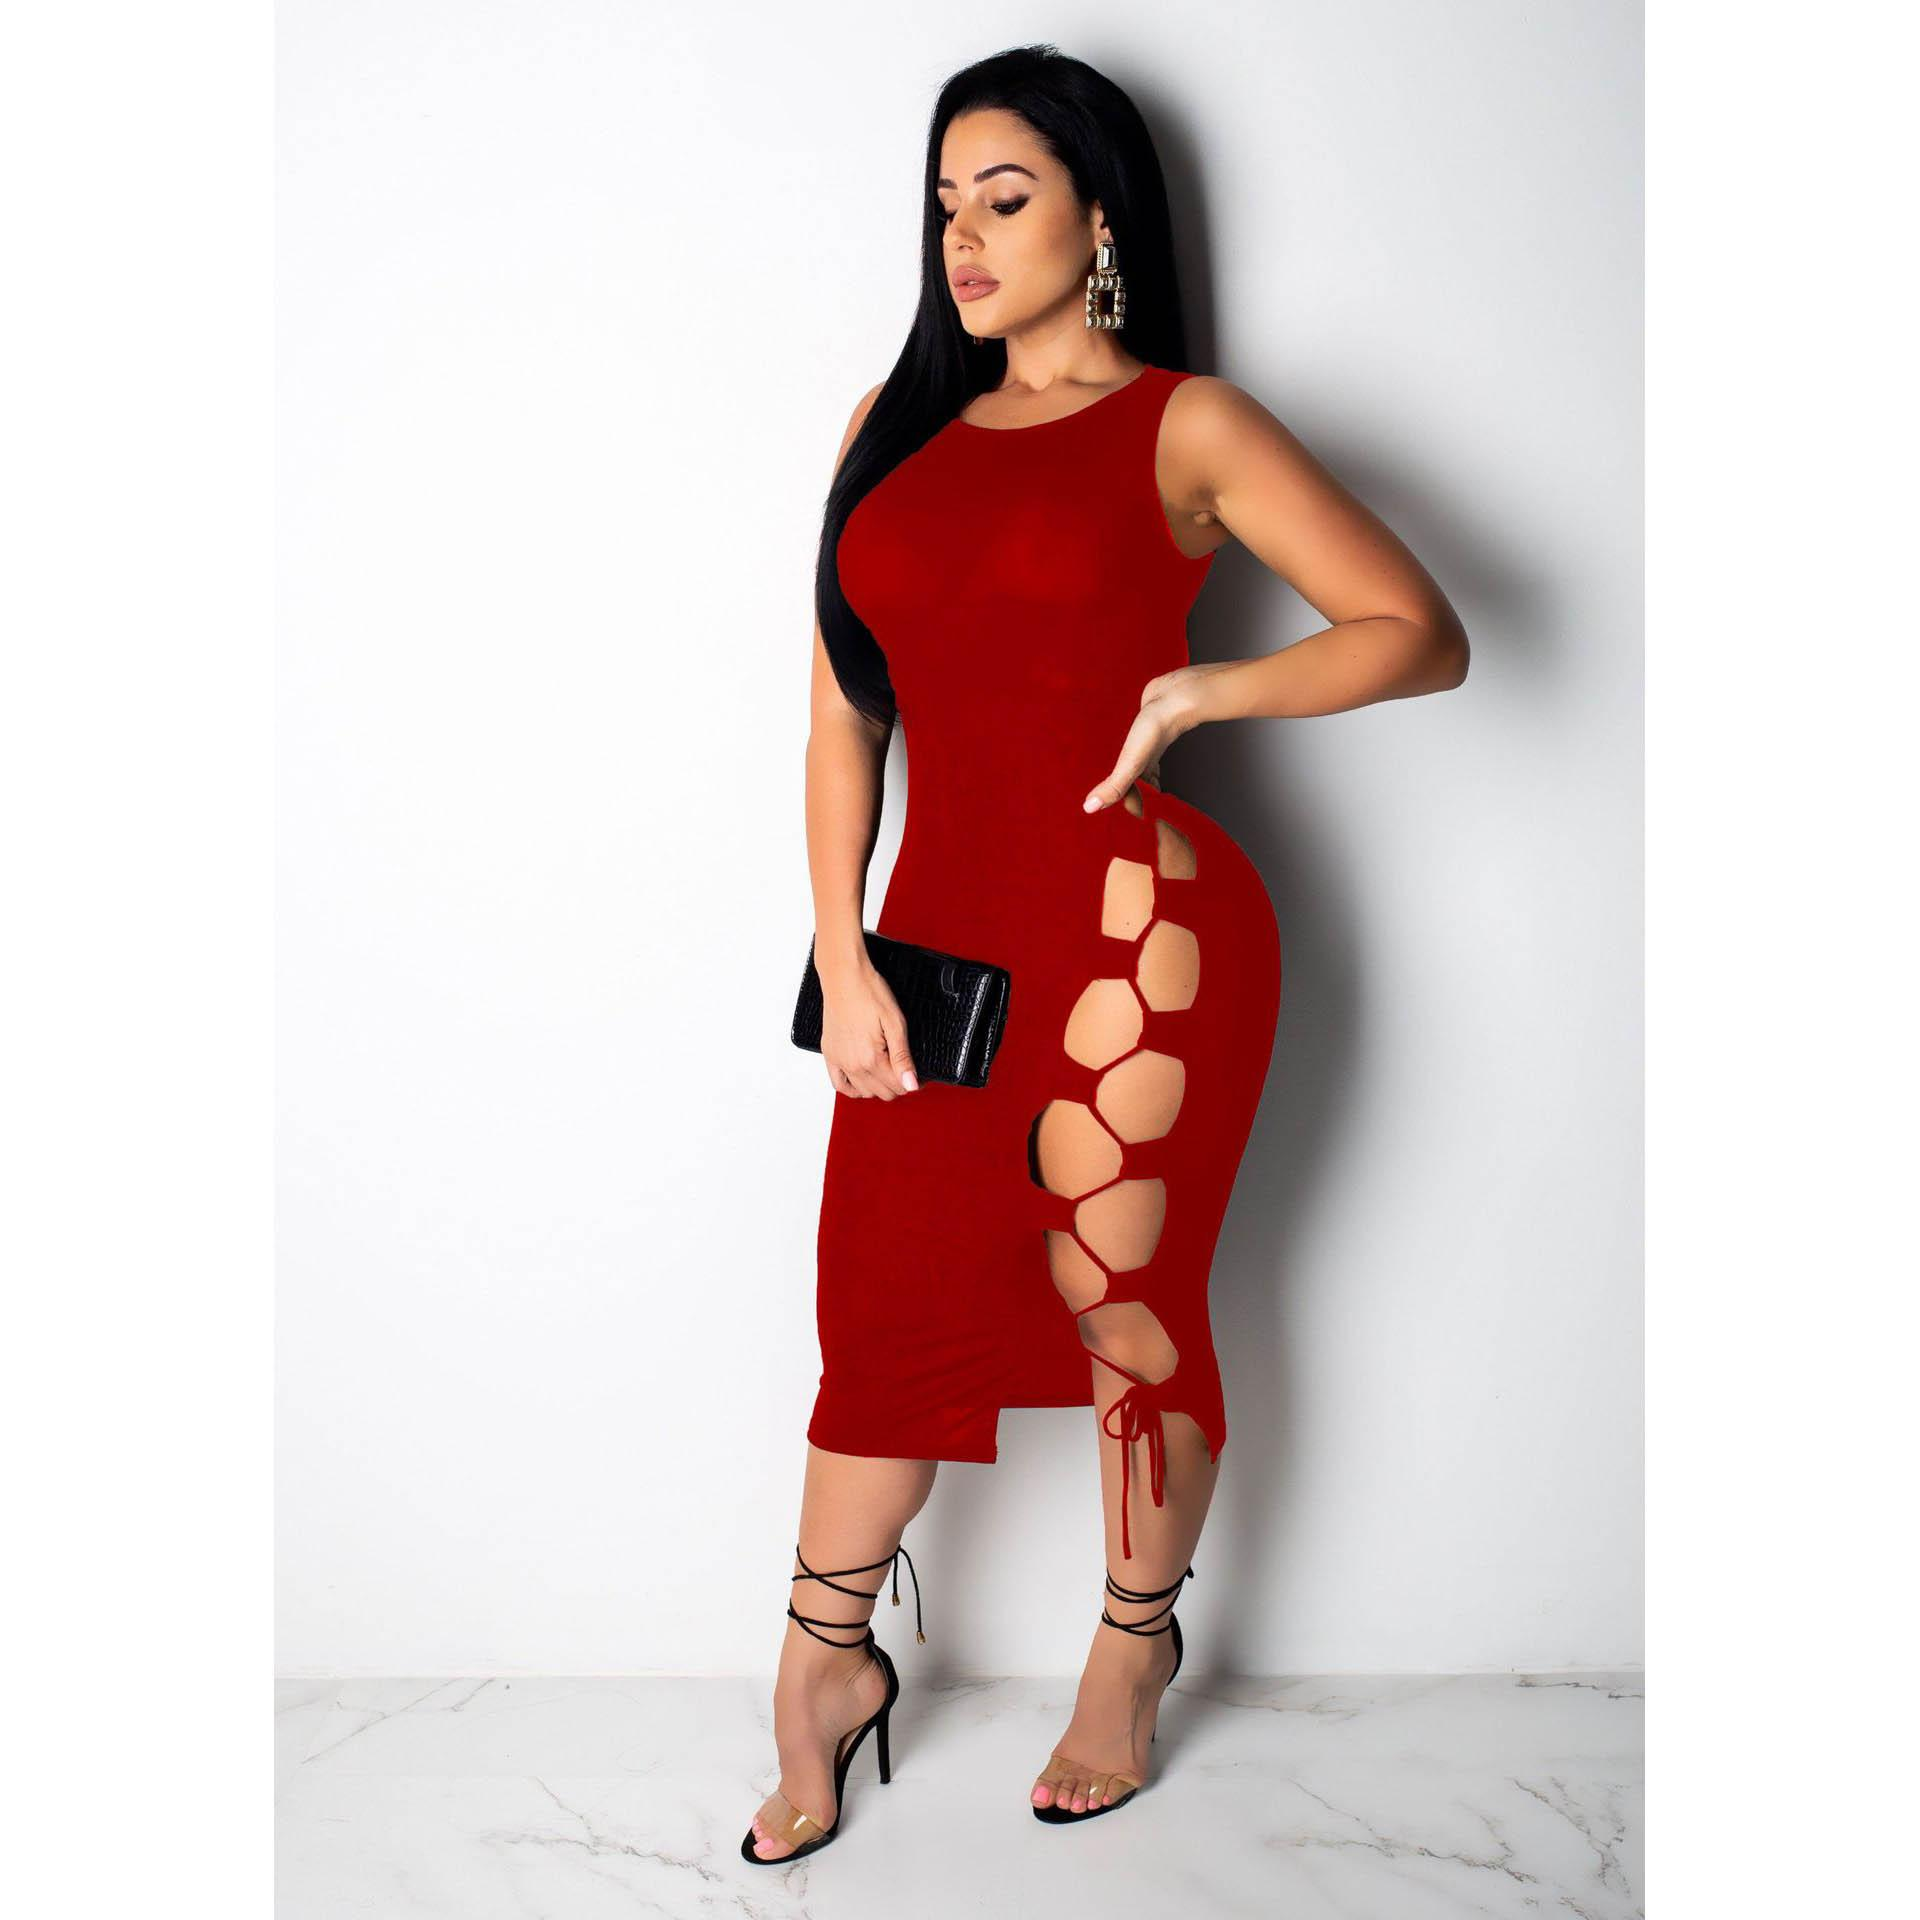 Women Summer Dresses Womens New Brand Sexy Boycon Dress Women Fashion Sleeveless Hollow Out Dress Ladies Sexy Club Style Dresses